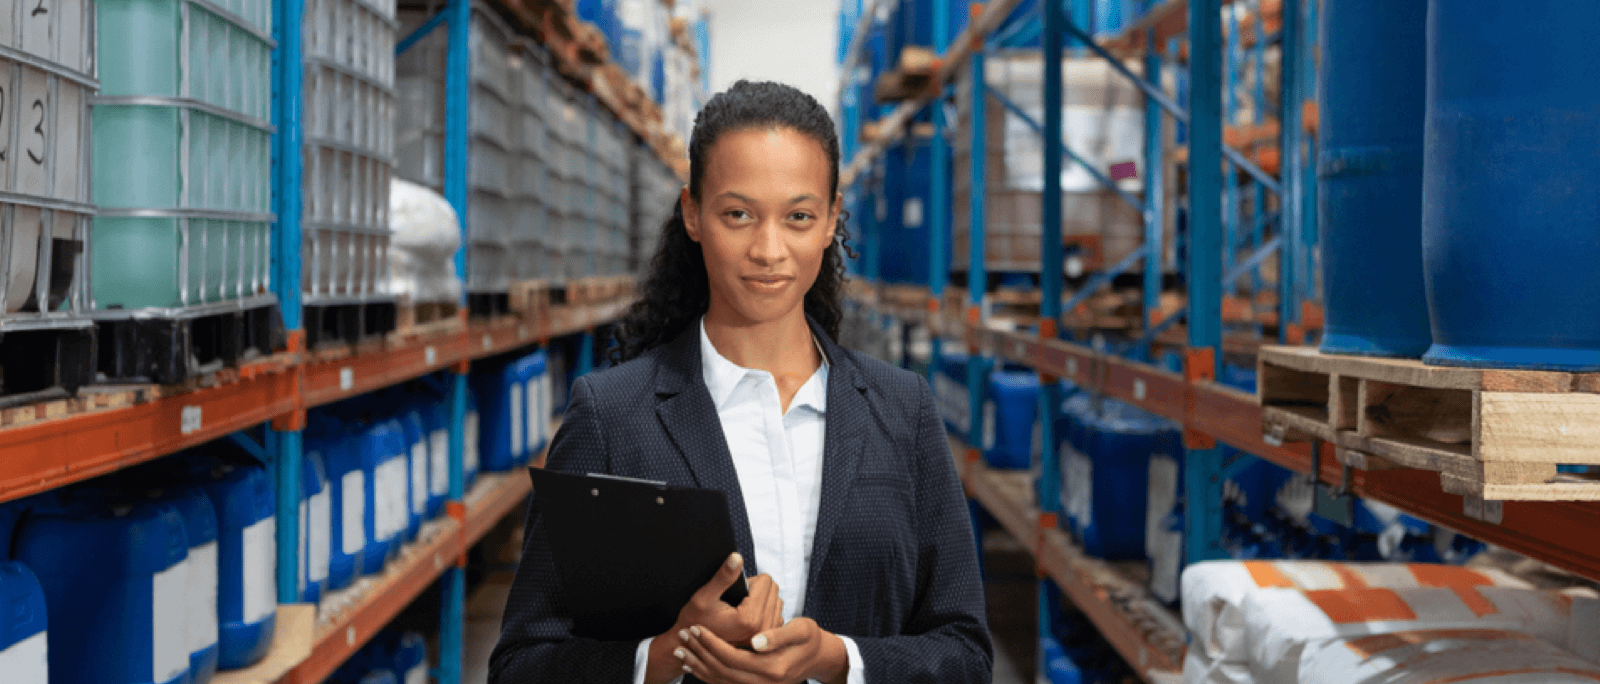 Warehouse Manager Job Description And Qualifications